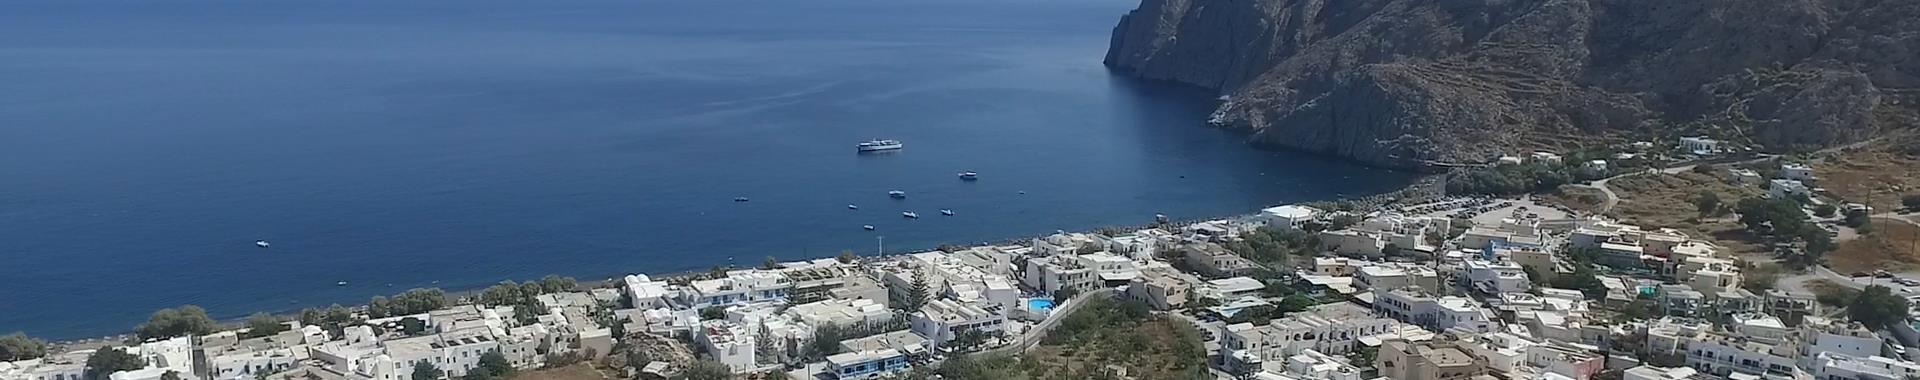 Kamari Kamari Hotels in Santorini island, Greece